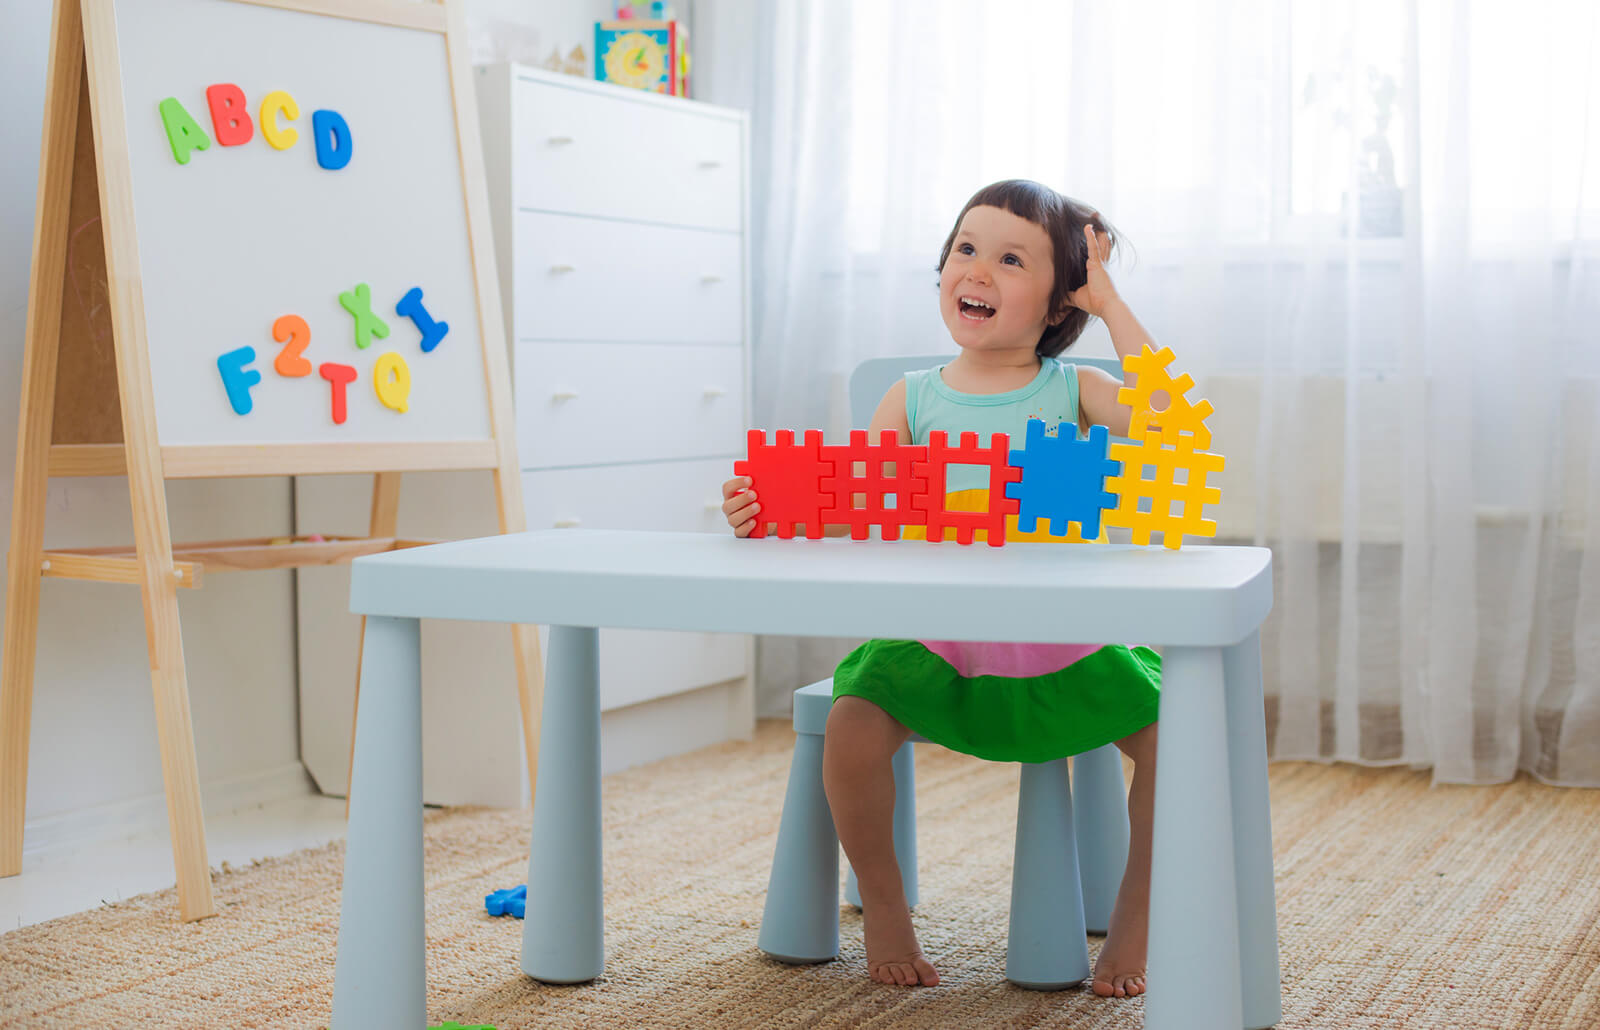 Best Bunk Beds And Children's Tables On The Market